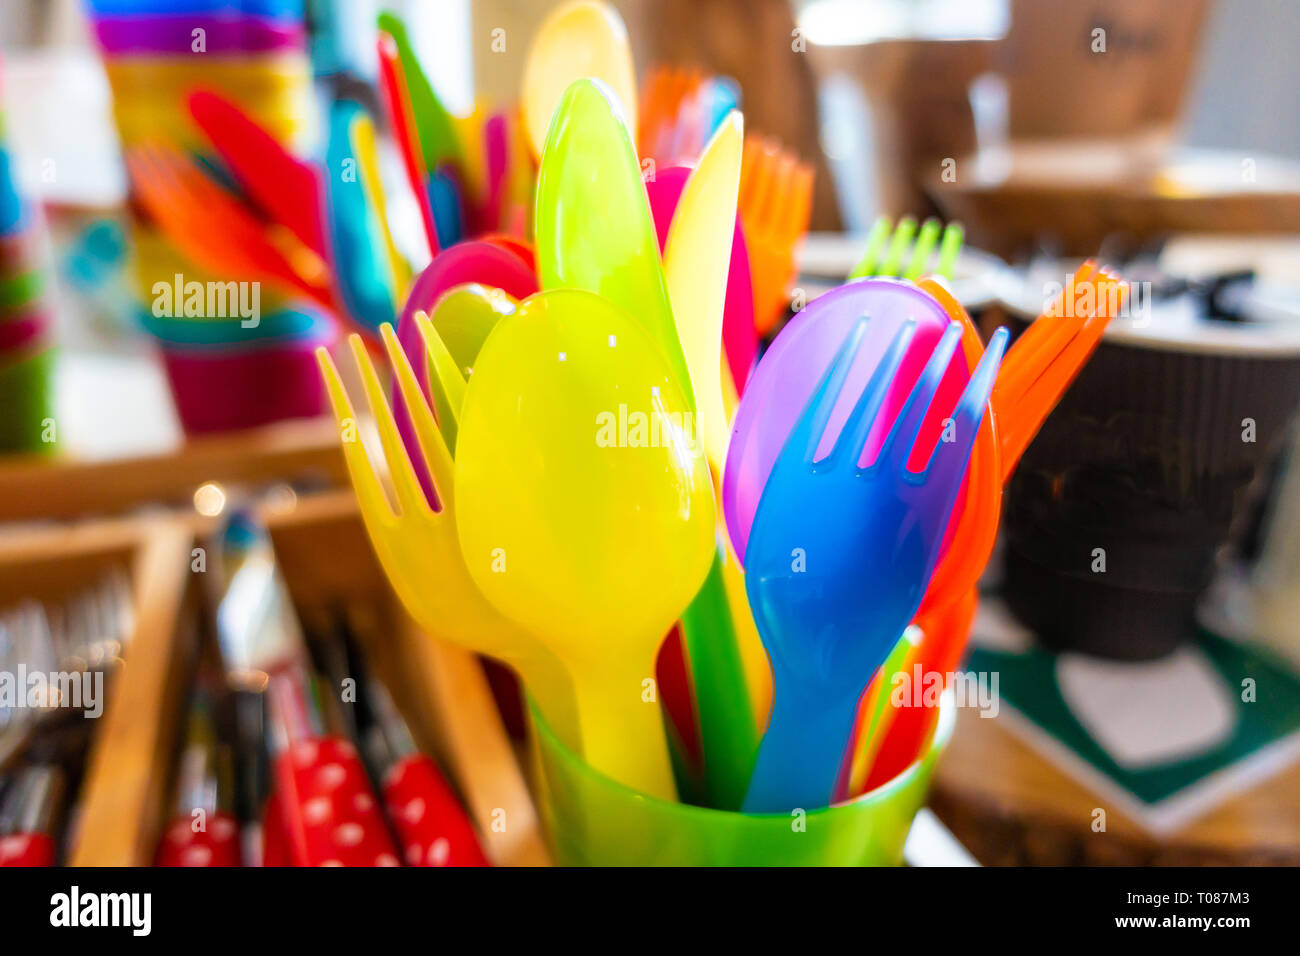 Colourful child safe plastic cutlery - Stock Image